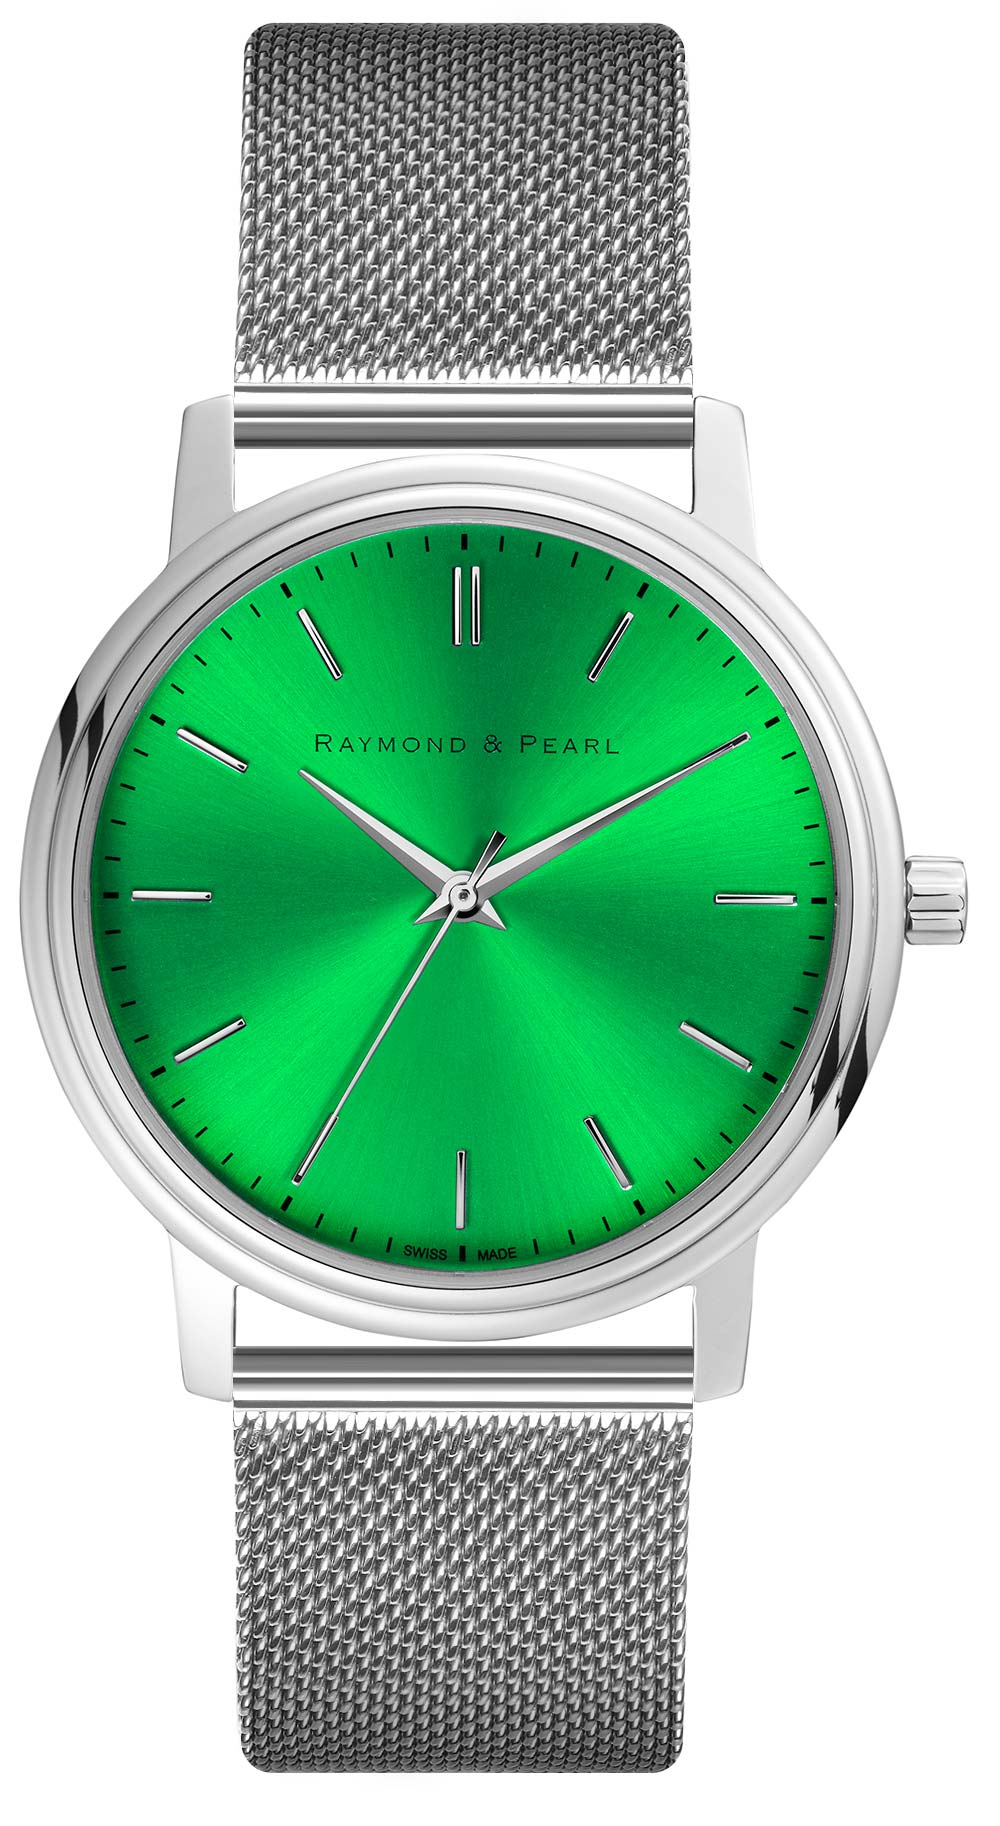 raymond and pearl swiss made green